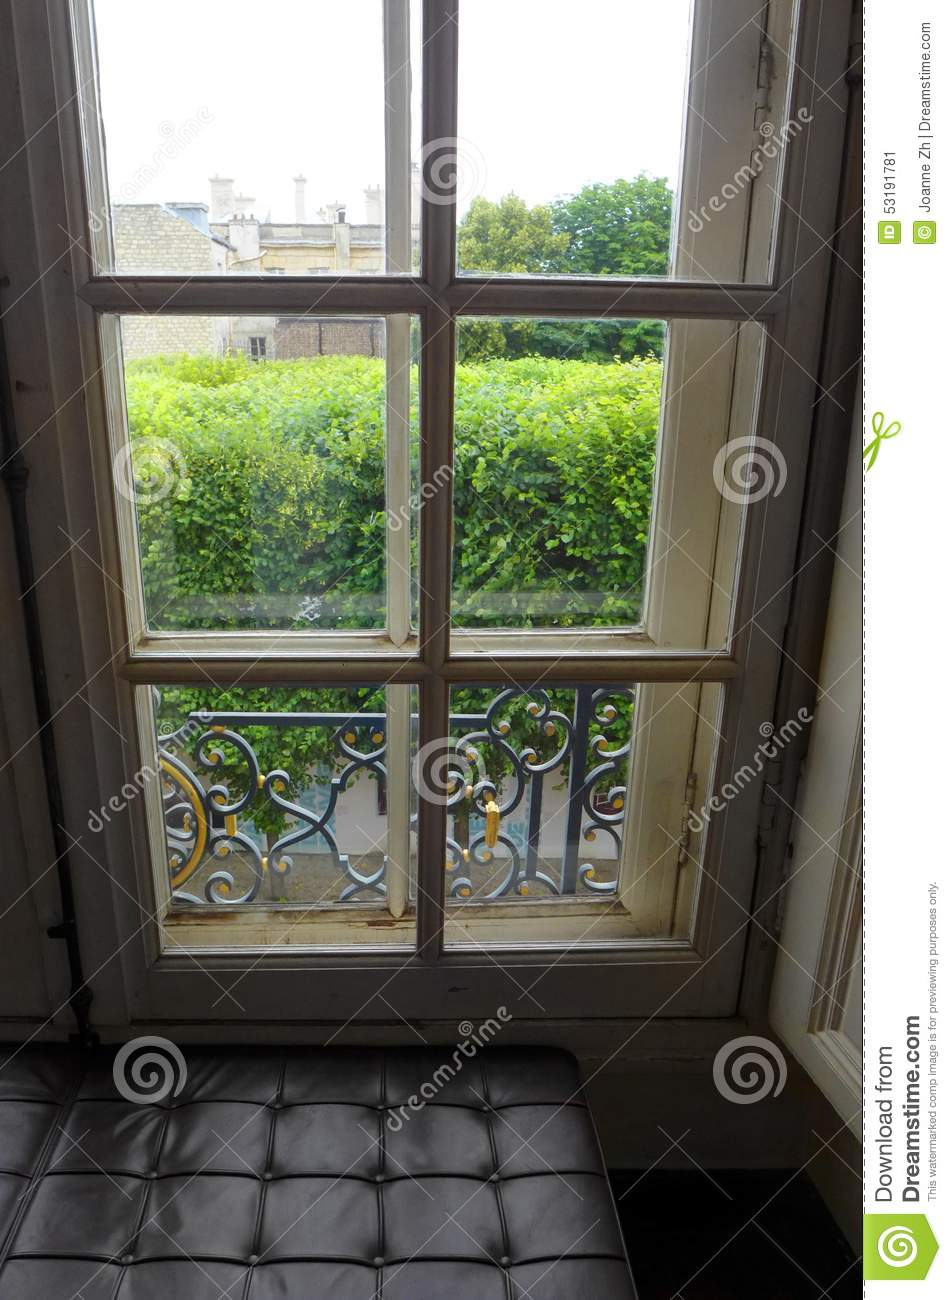 Parisian house window with view stock image image of for House plans with window views